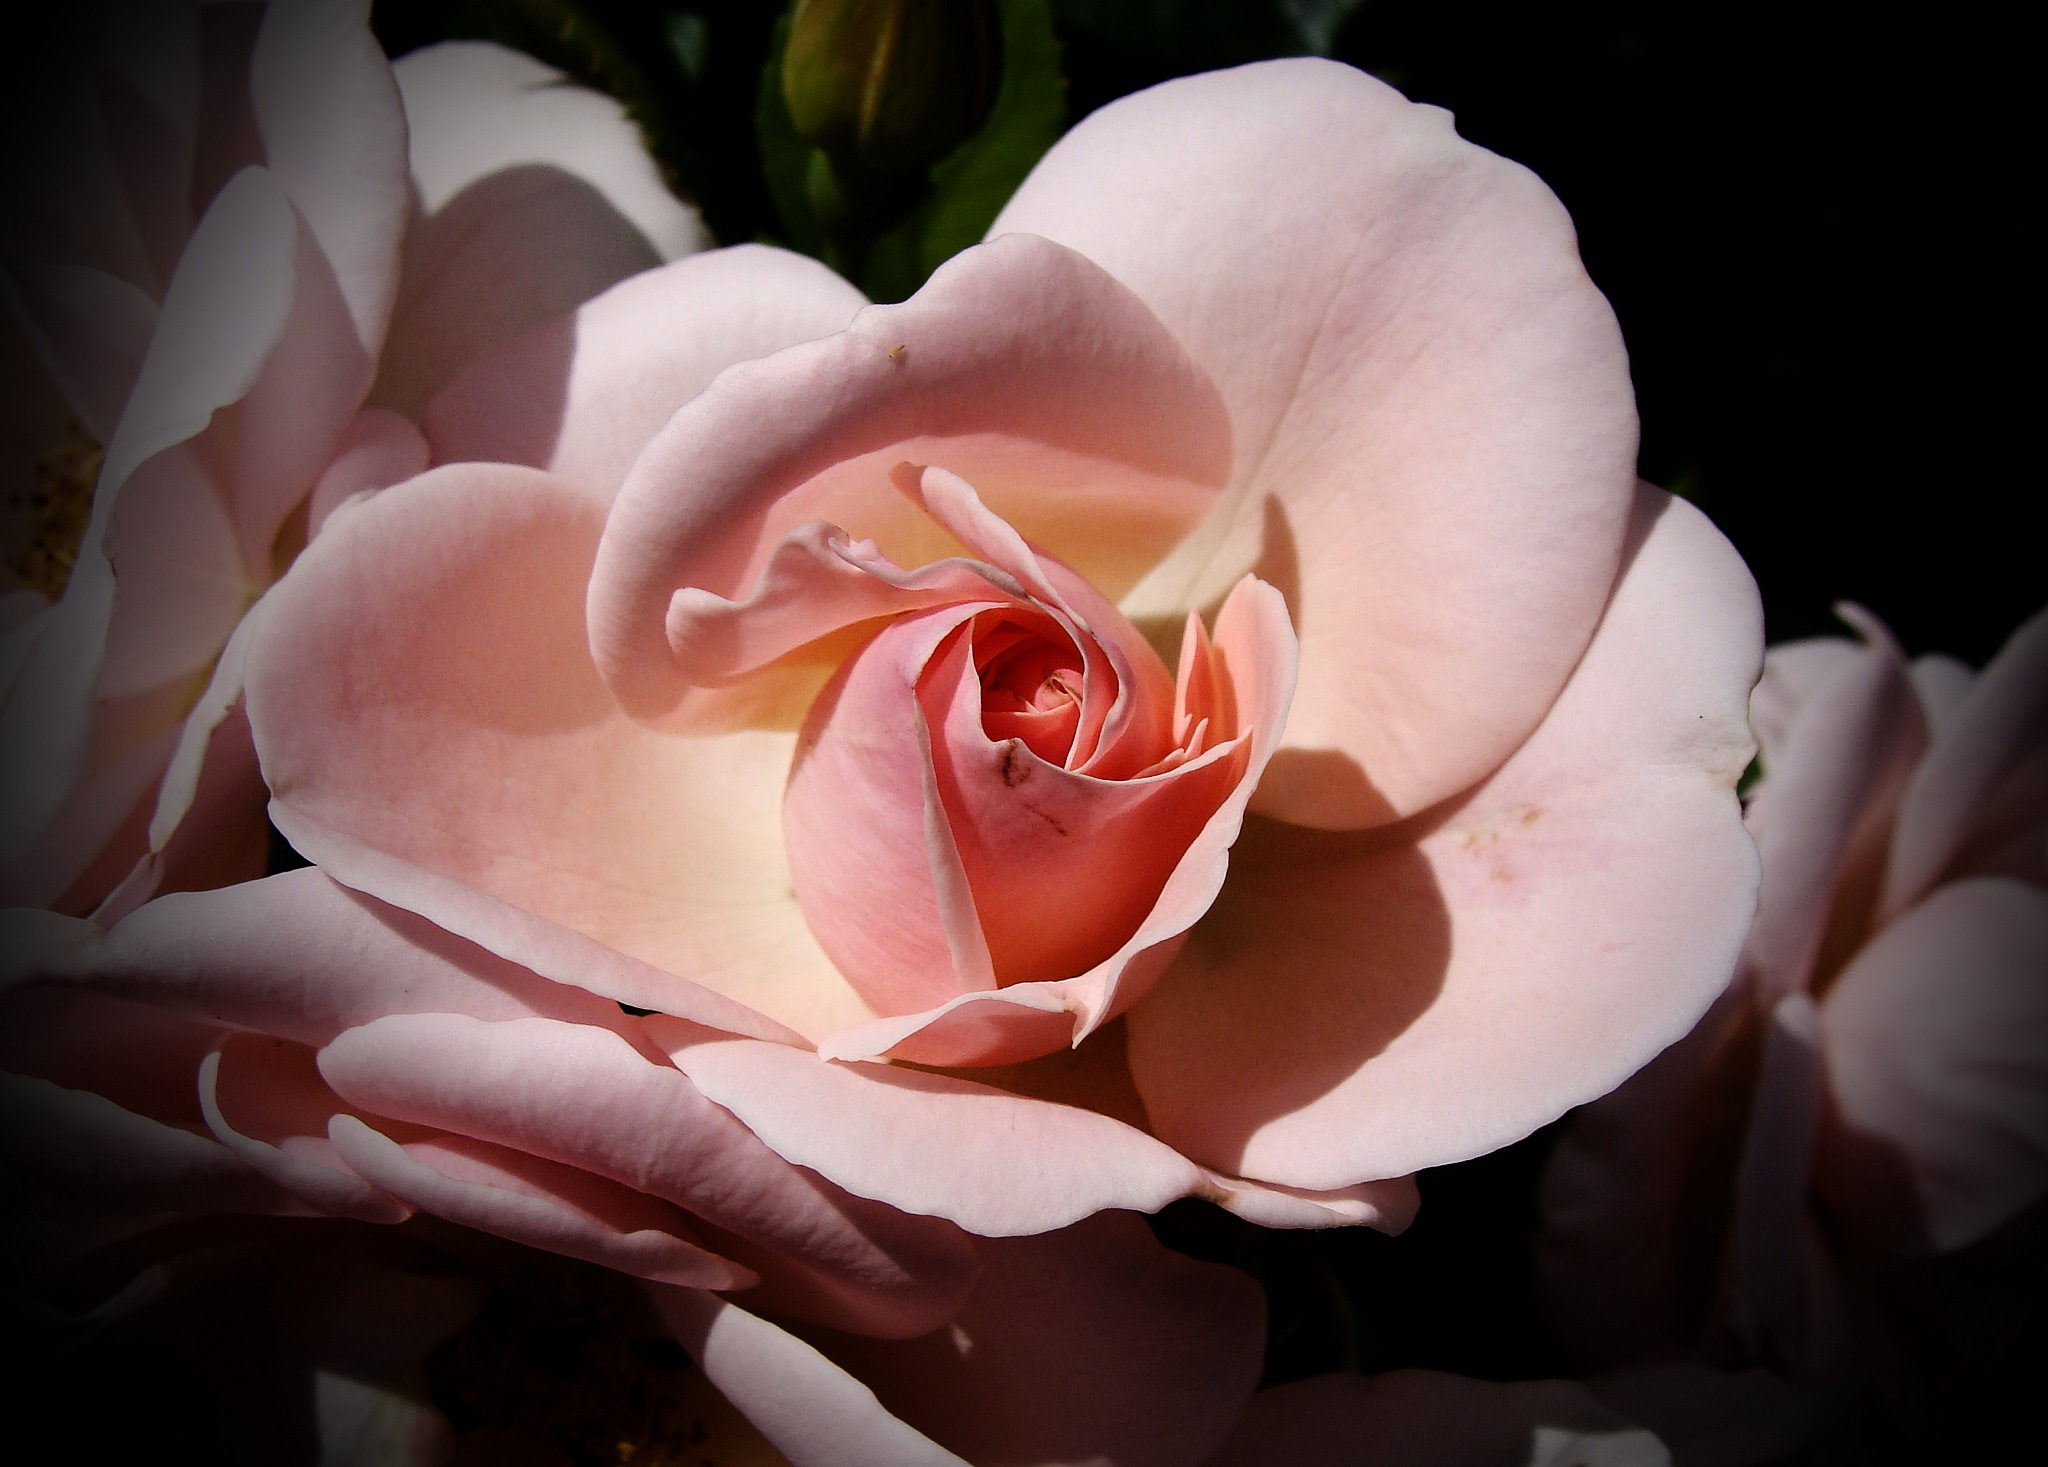 pink rose by Terry Dunn